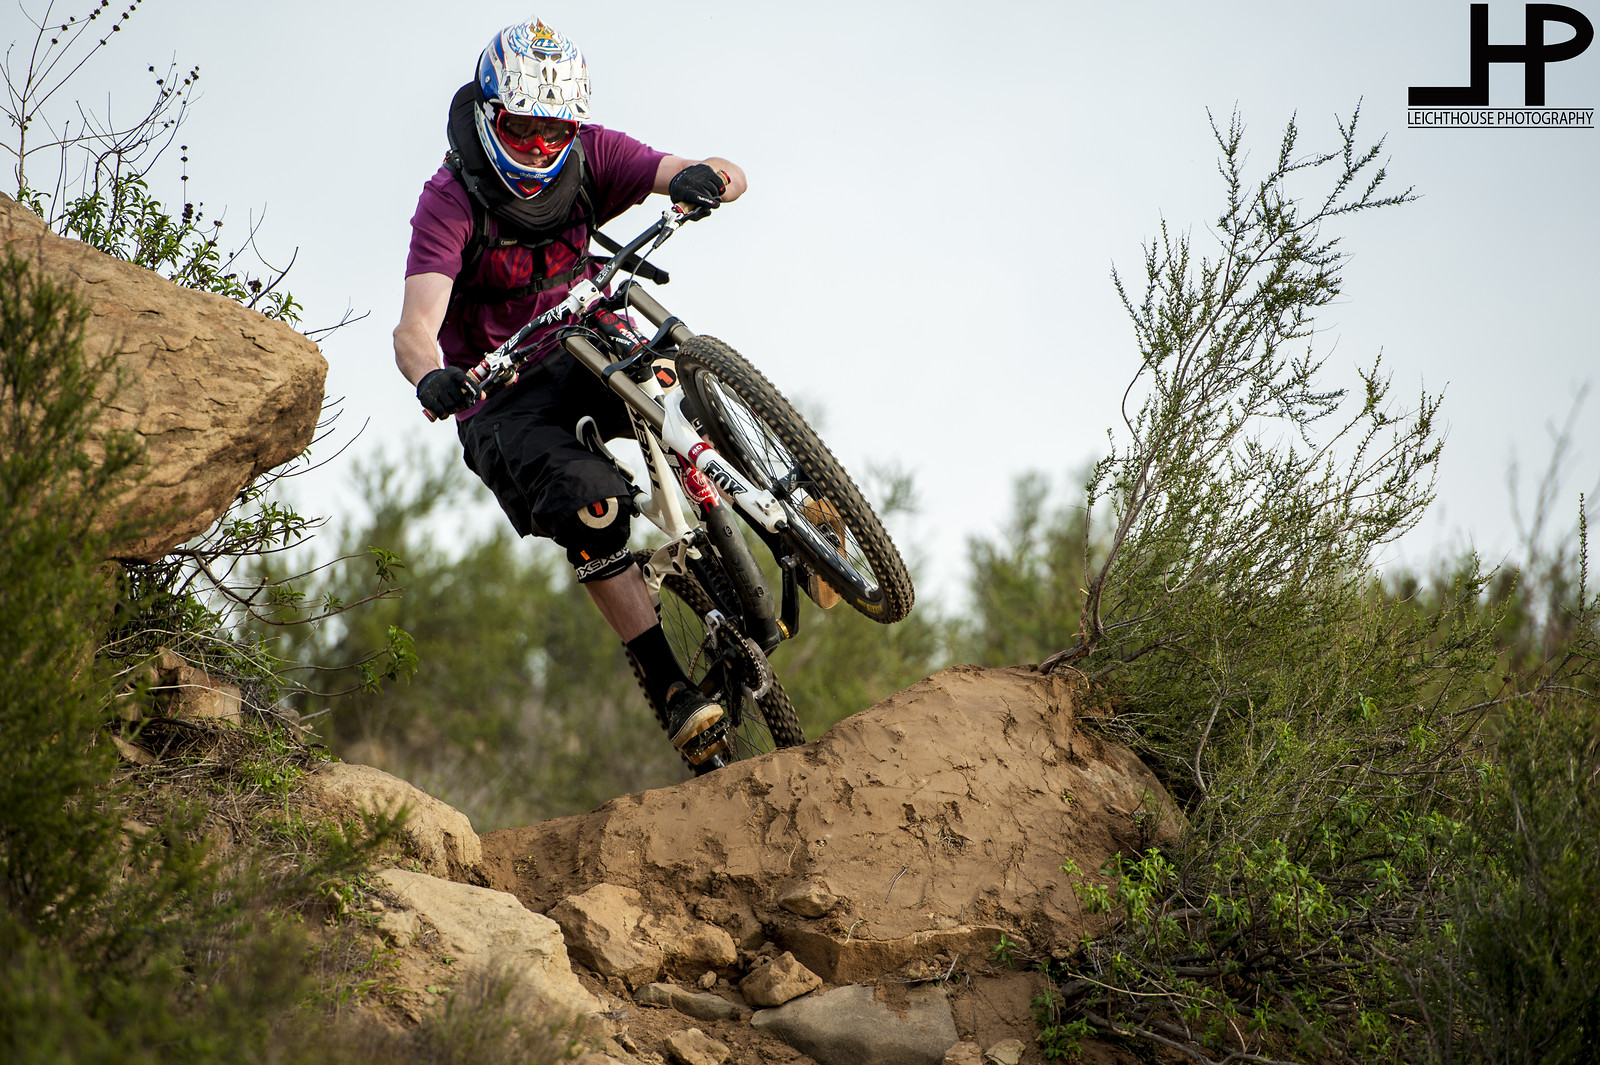 killshot  - LeichtHouse photography - Mountain Biking Pictures - Vital MTB